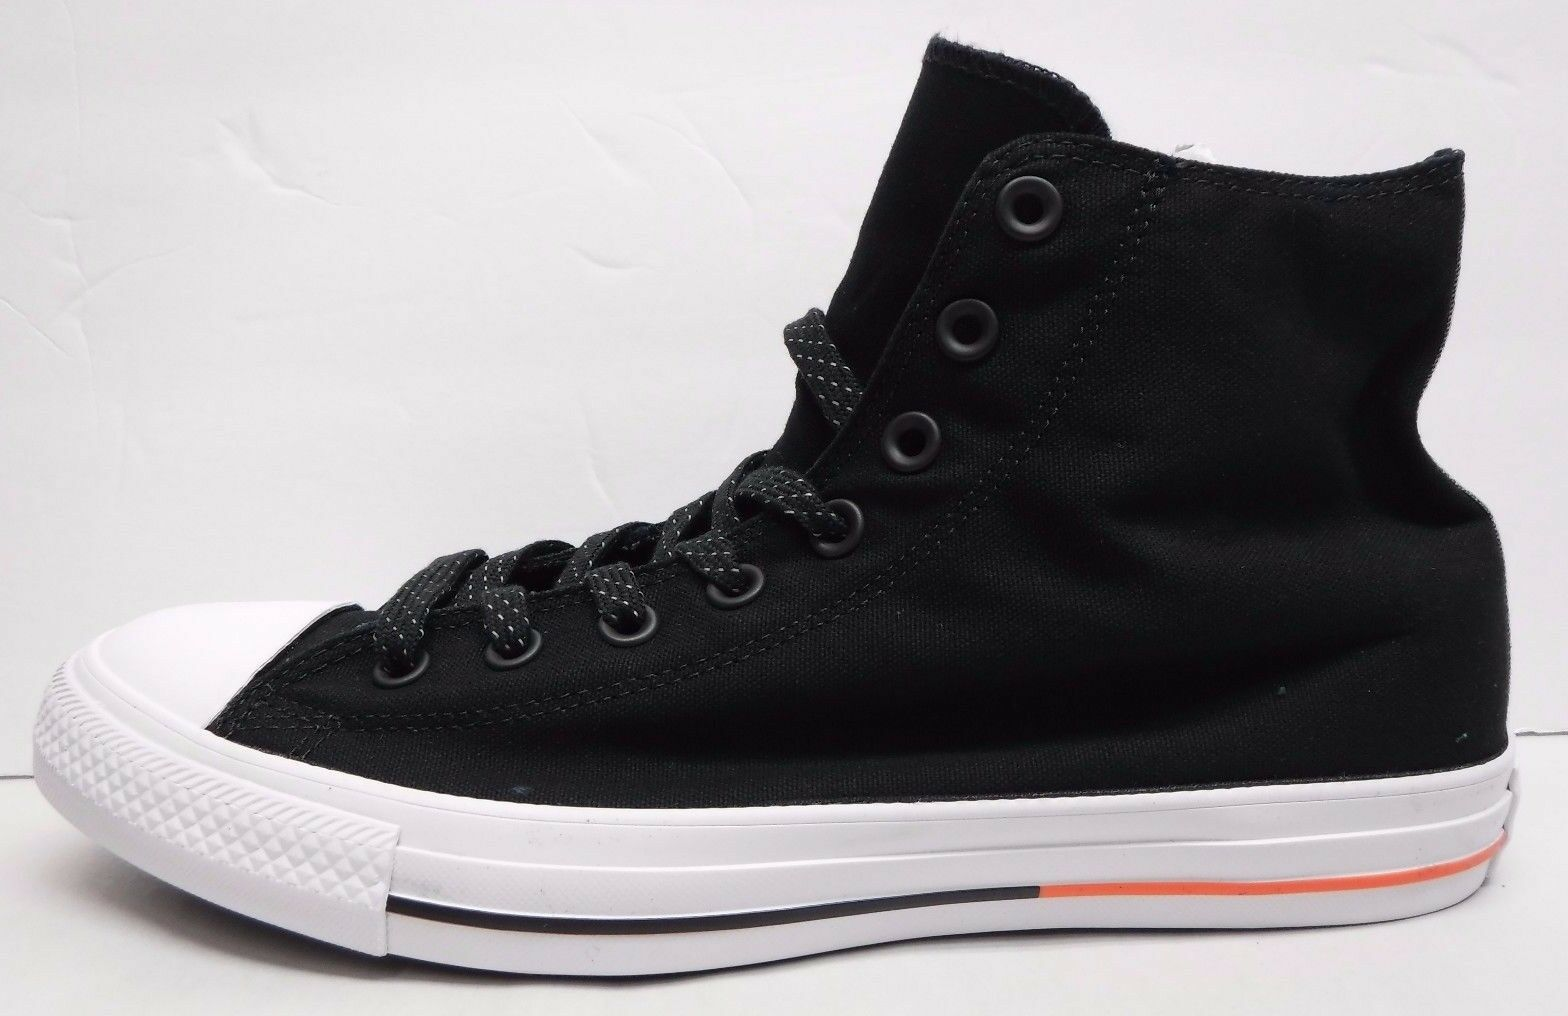 Converse Size 9.5 Black Hi Tops All Star Sneakers New Mens Shoes